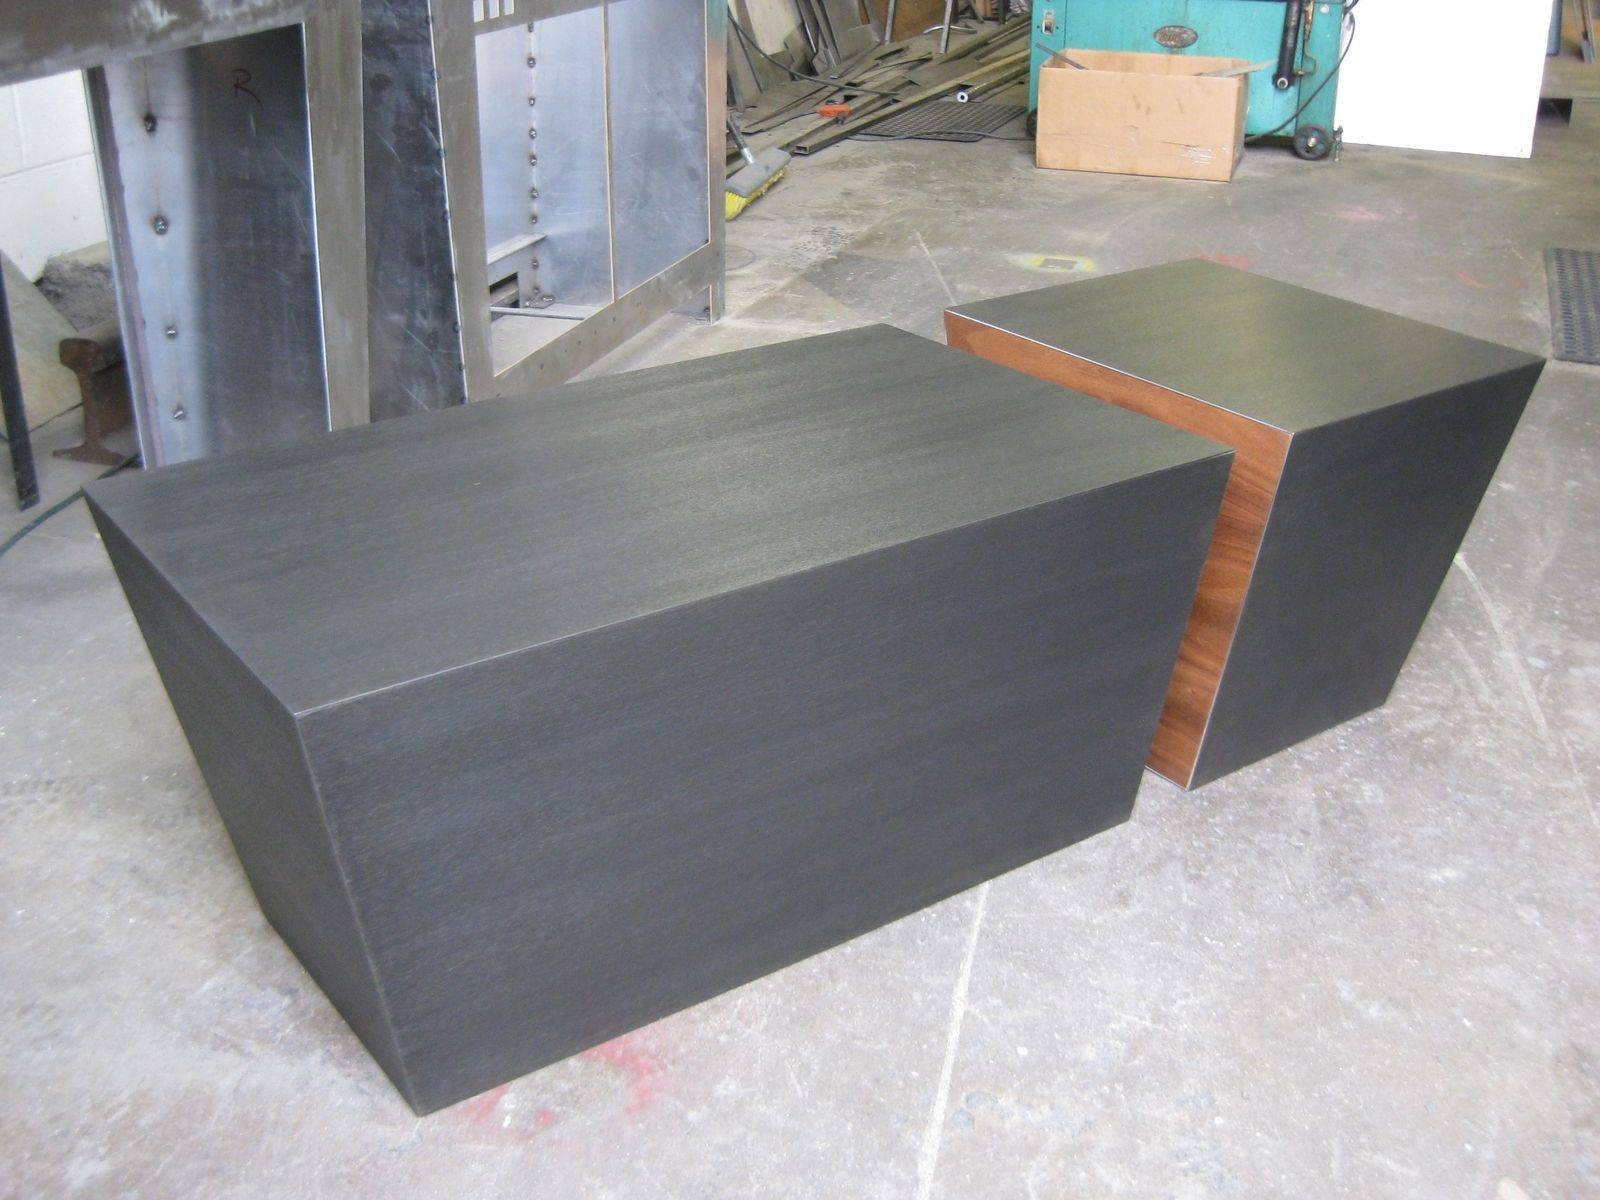 Walnut Coffee Tables | Custommade intended for Square Coffee Tables With Storage Cubes (Image 31 of 31)